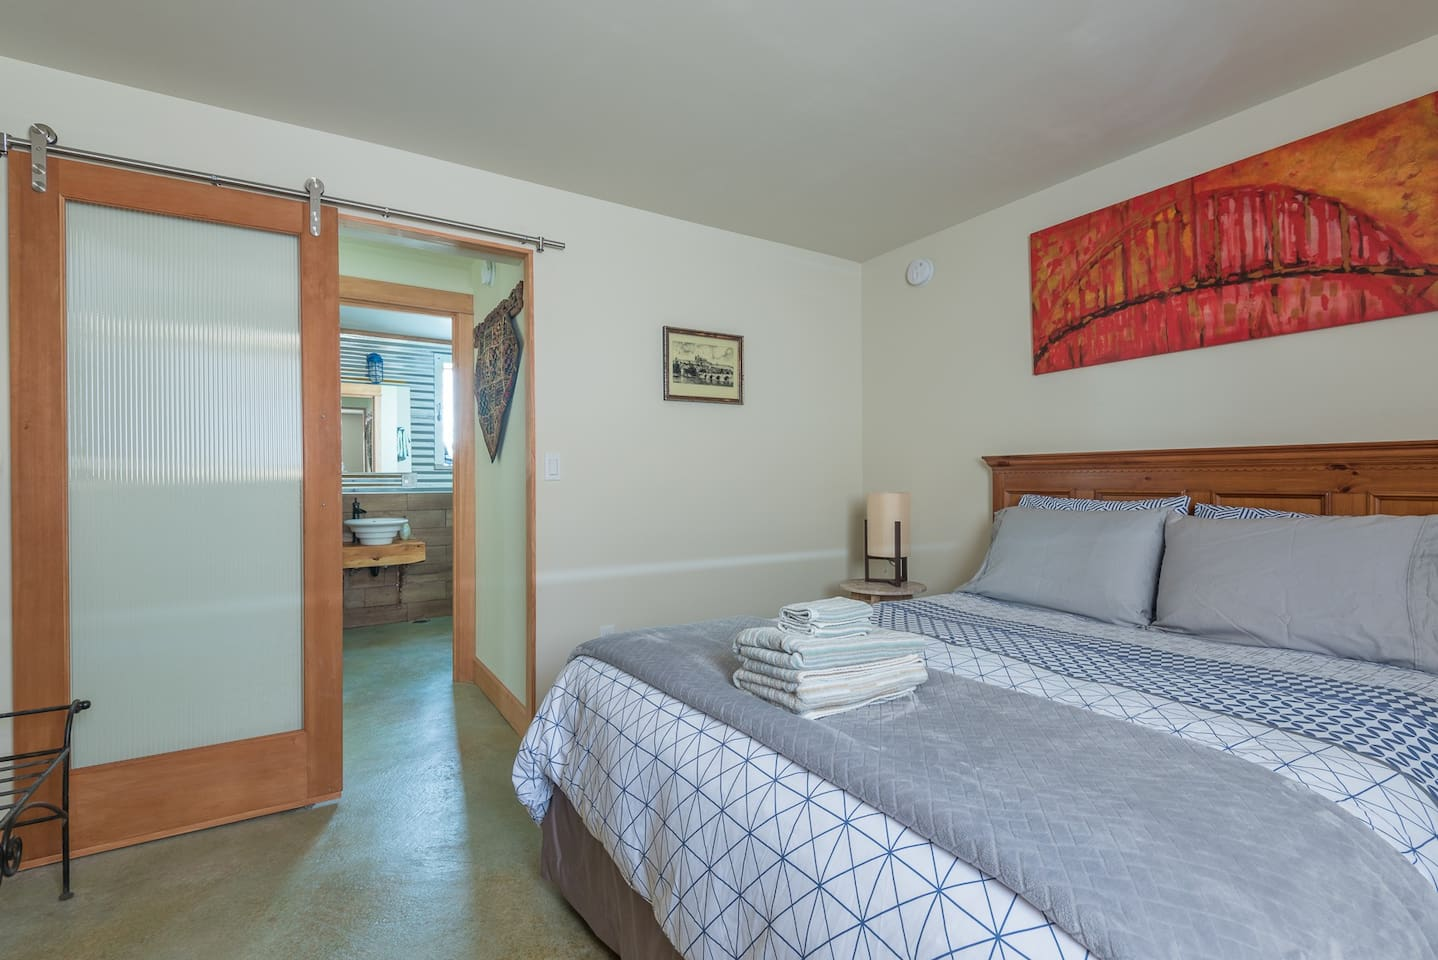 Easy street parking ac walk to division guest suites for rent queen bed with barn style door for privacy solutioingenieria Gallery